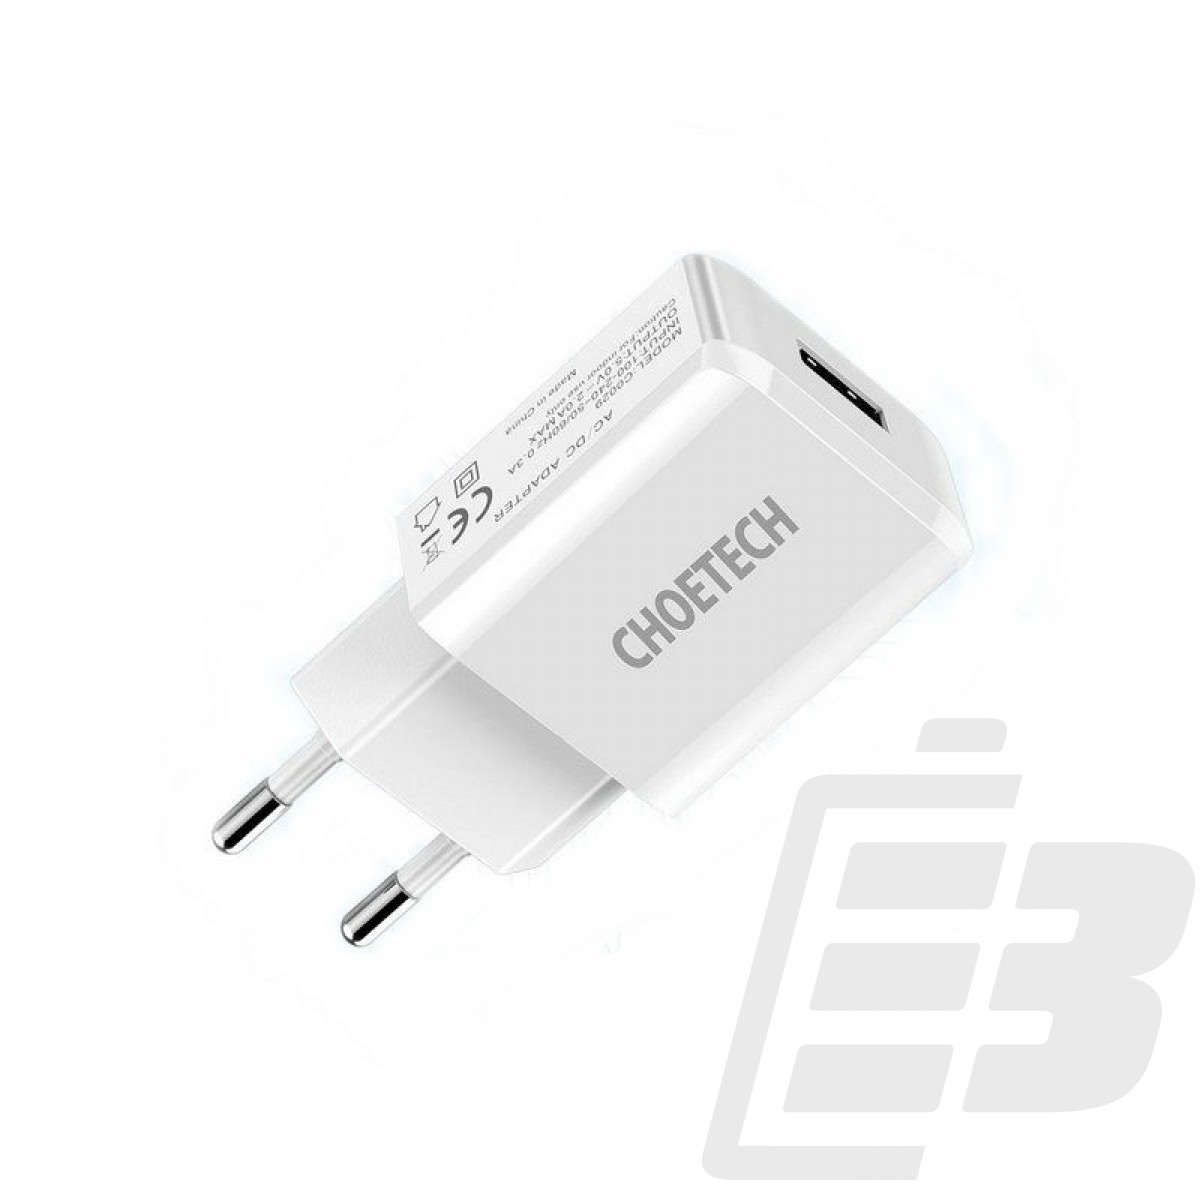 Choetech C0029 Wall Adapter 1 x USB